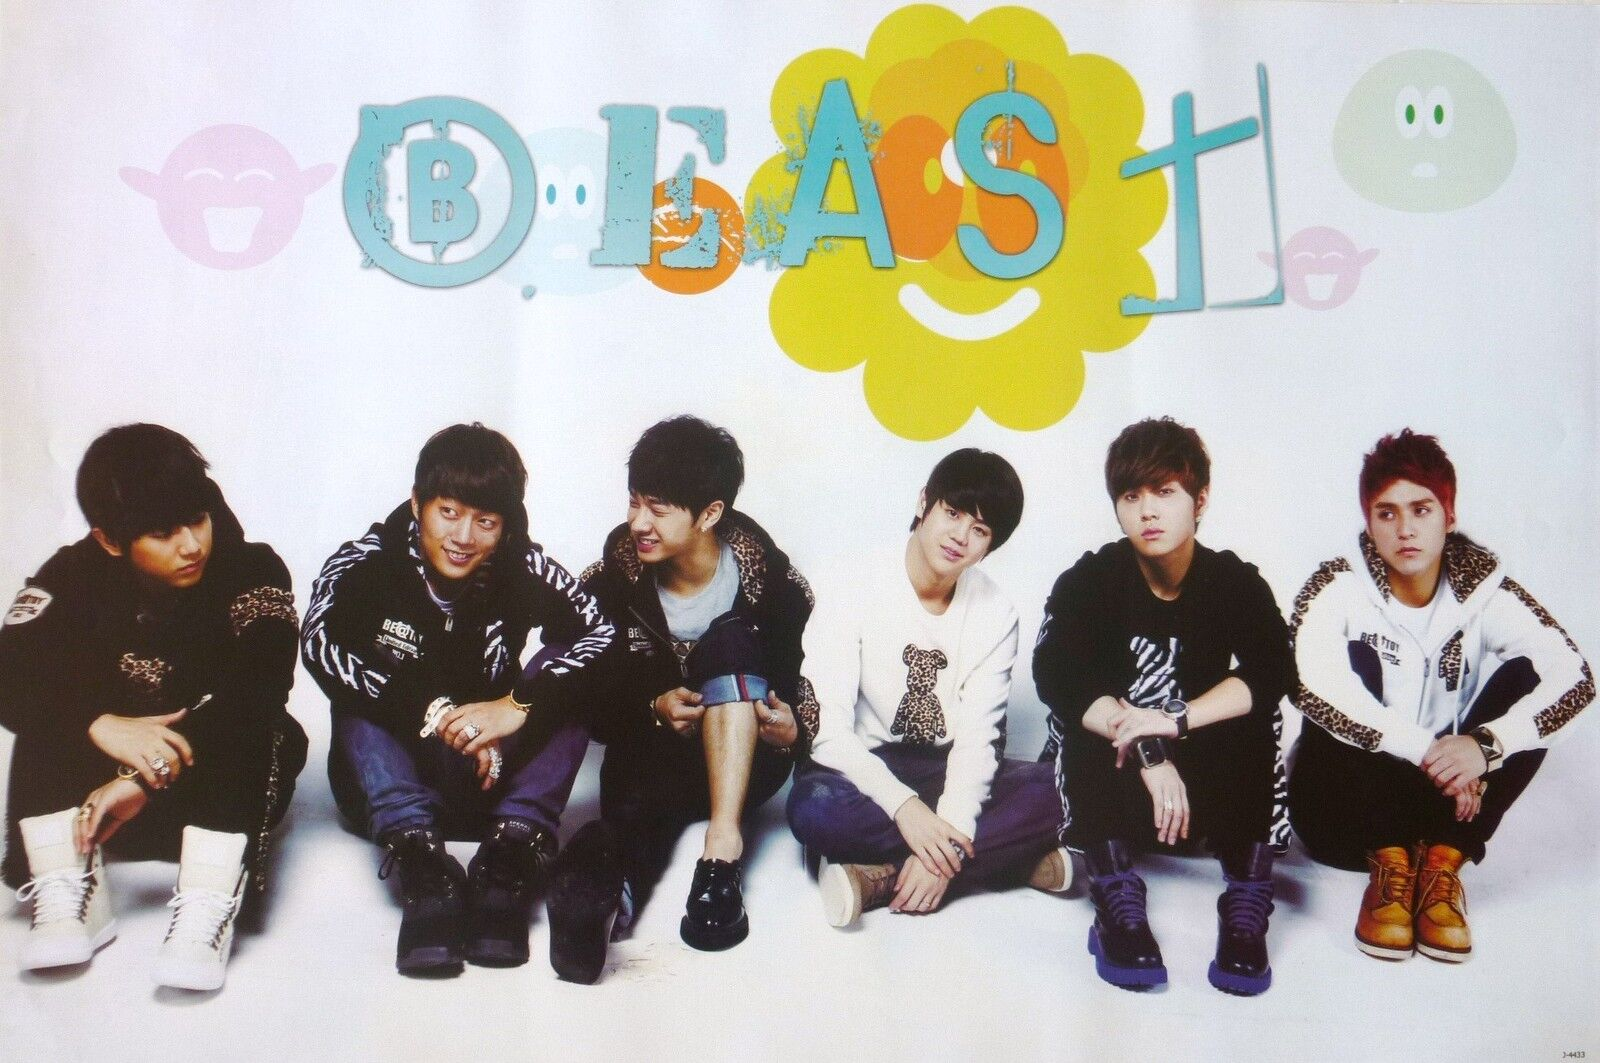 Beast quot;Sitting on Floorquot; Poster from Asia Korean Boy Band K Pop Mus